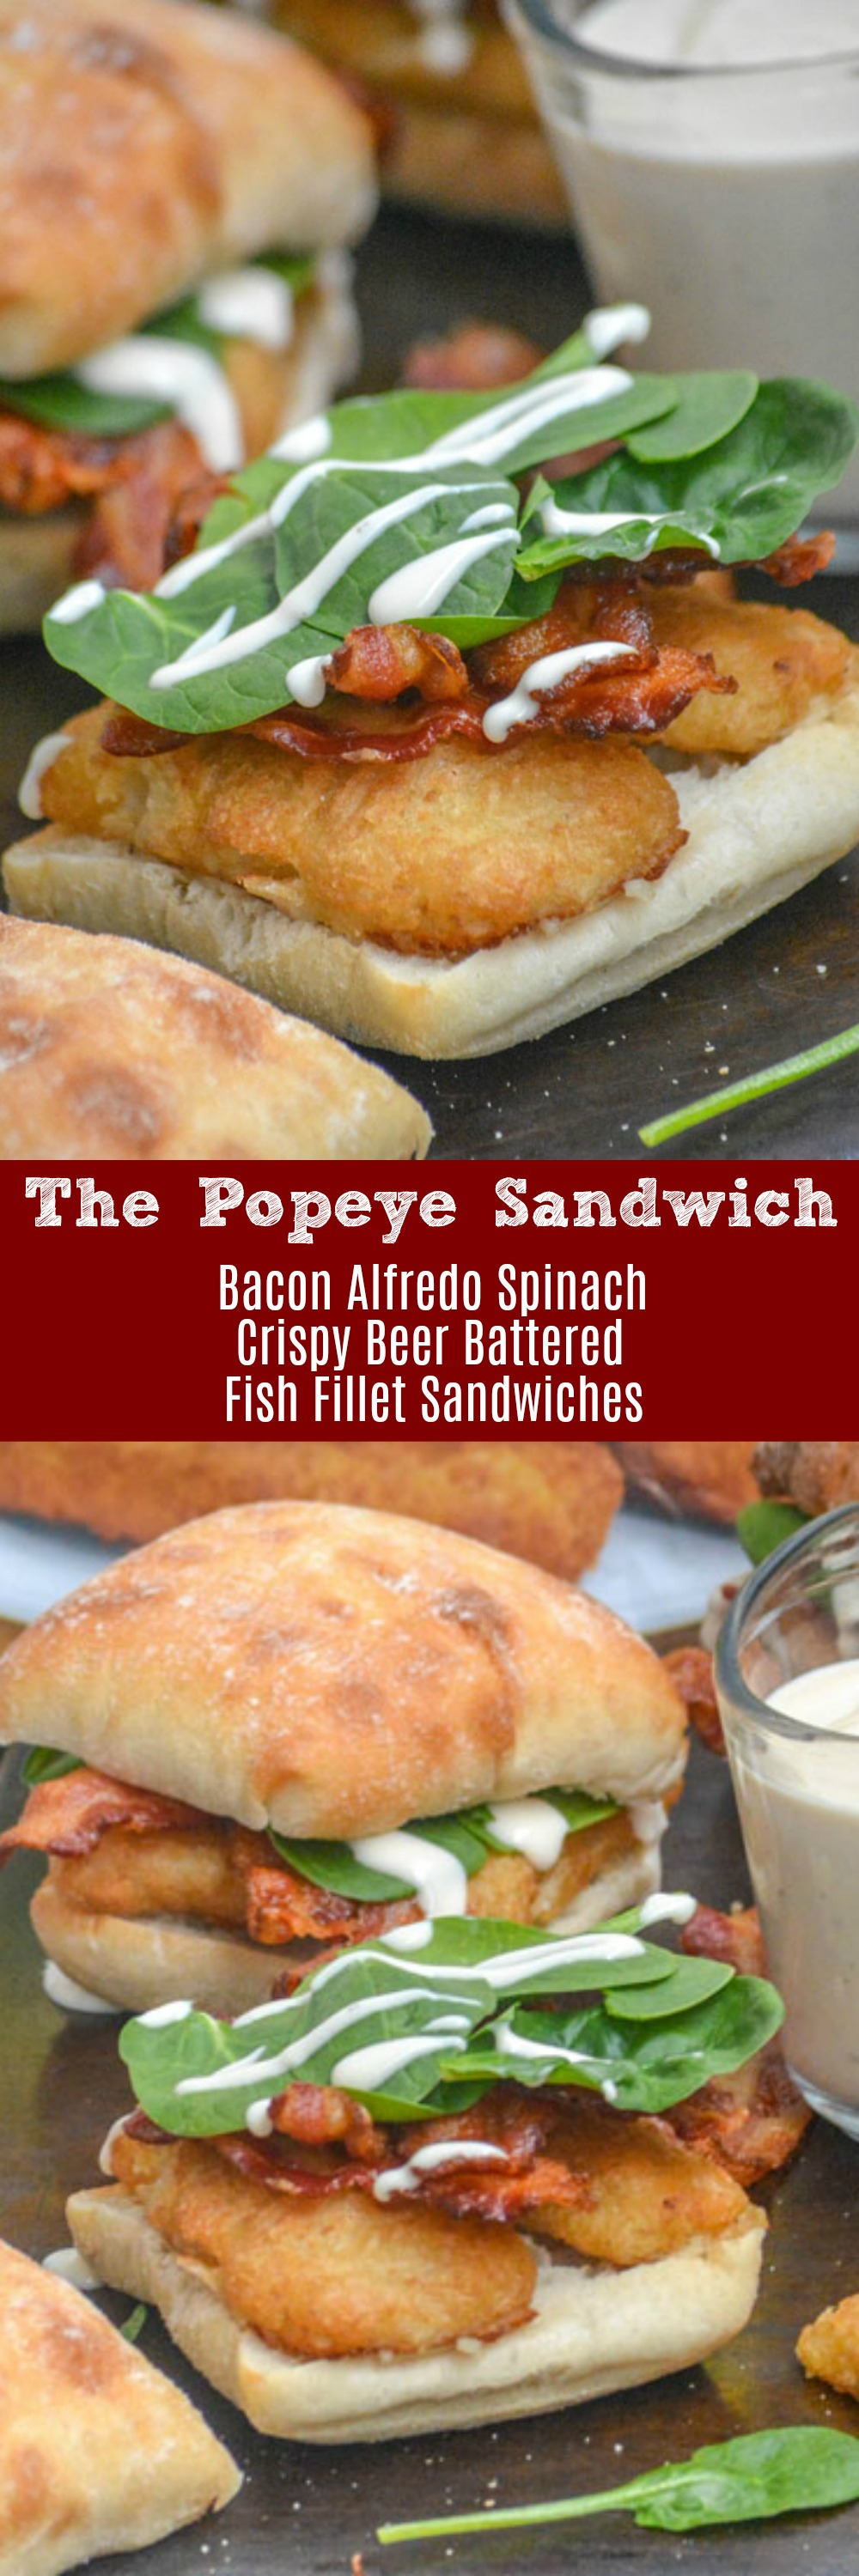 These Bacon Alfredo Spinach Beer Battered Fish Fillet Sandwiches, or Popeye Sandwiches as my kids call them, are perfect for Lent. They're a quick and easy lunch, or dinner, perfect for a filling meal and a fun way to get some greens into your family's diet.